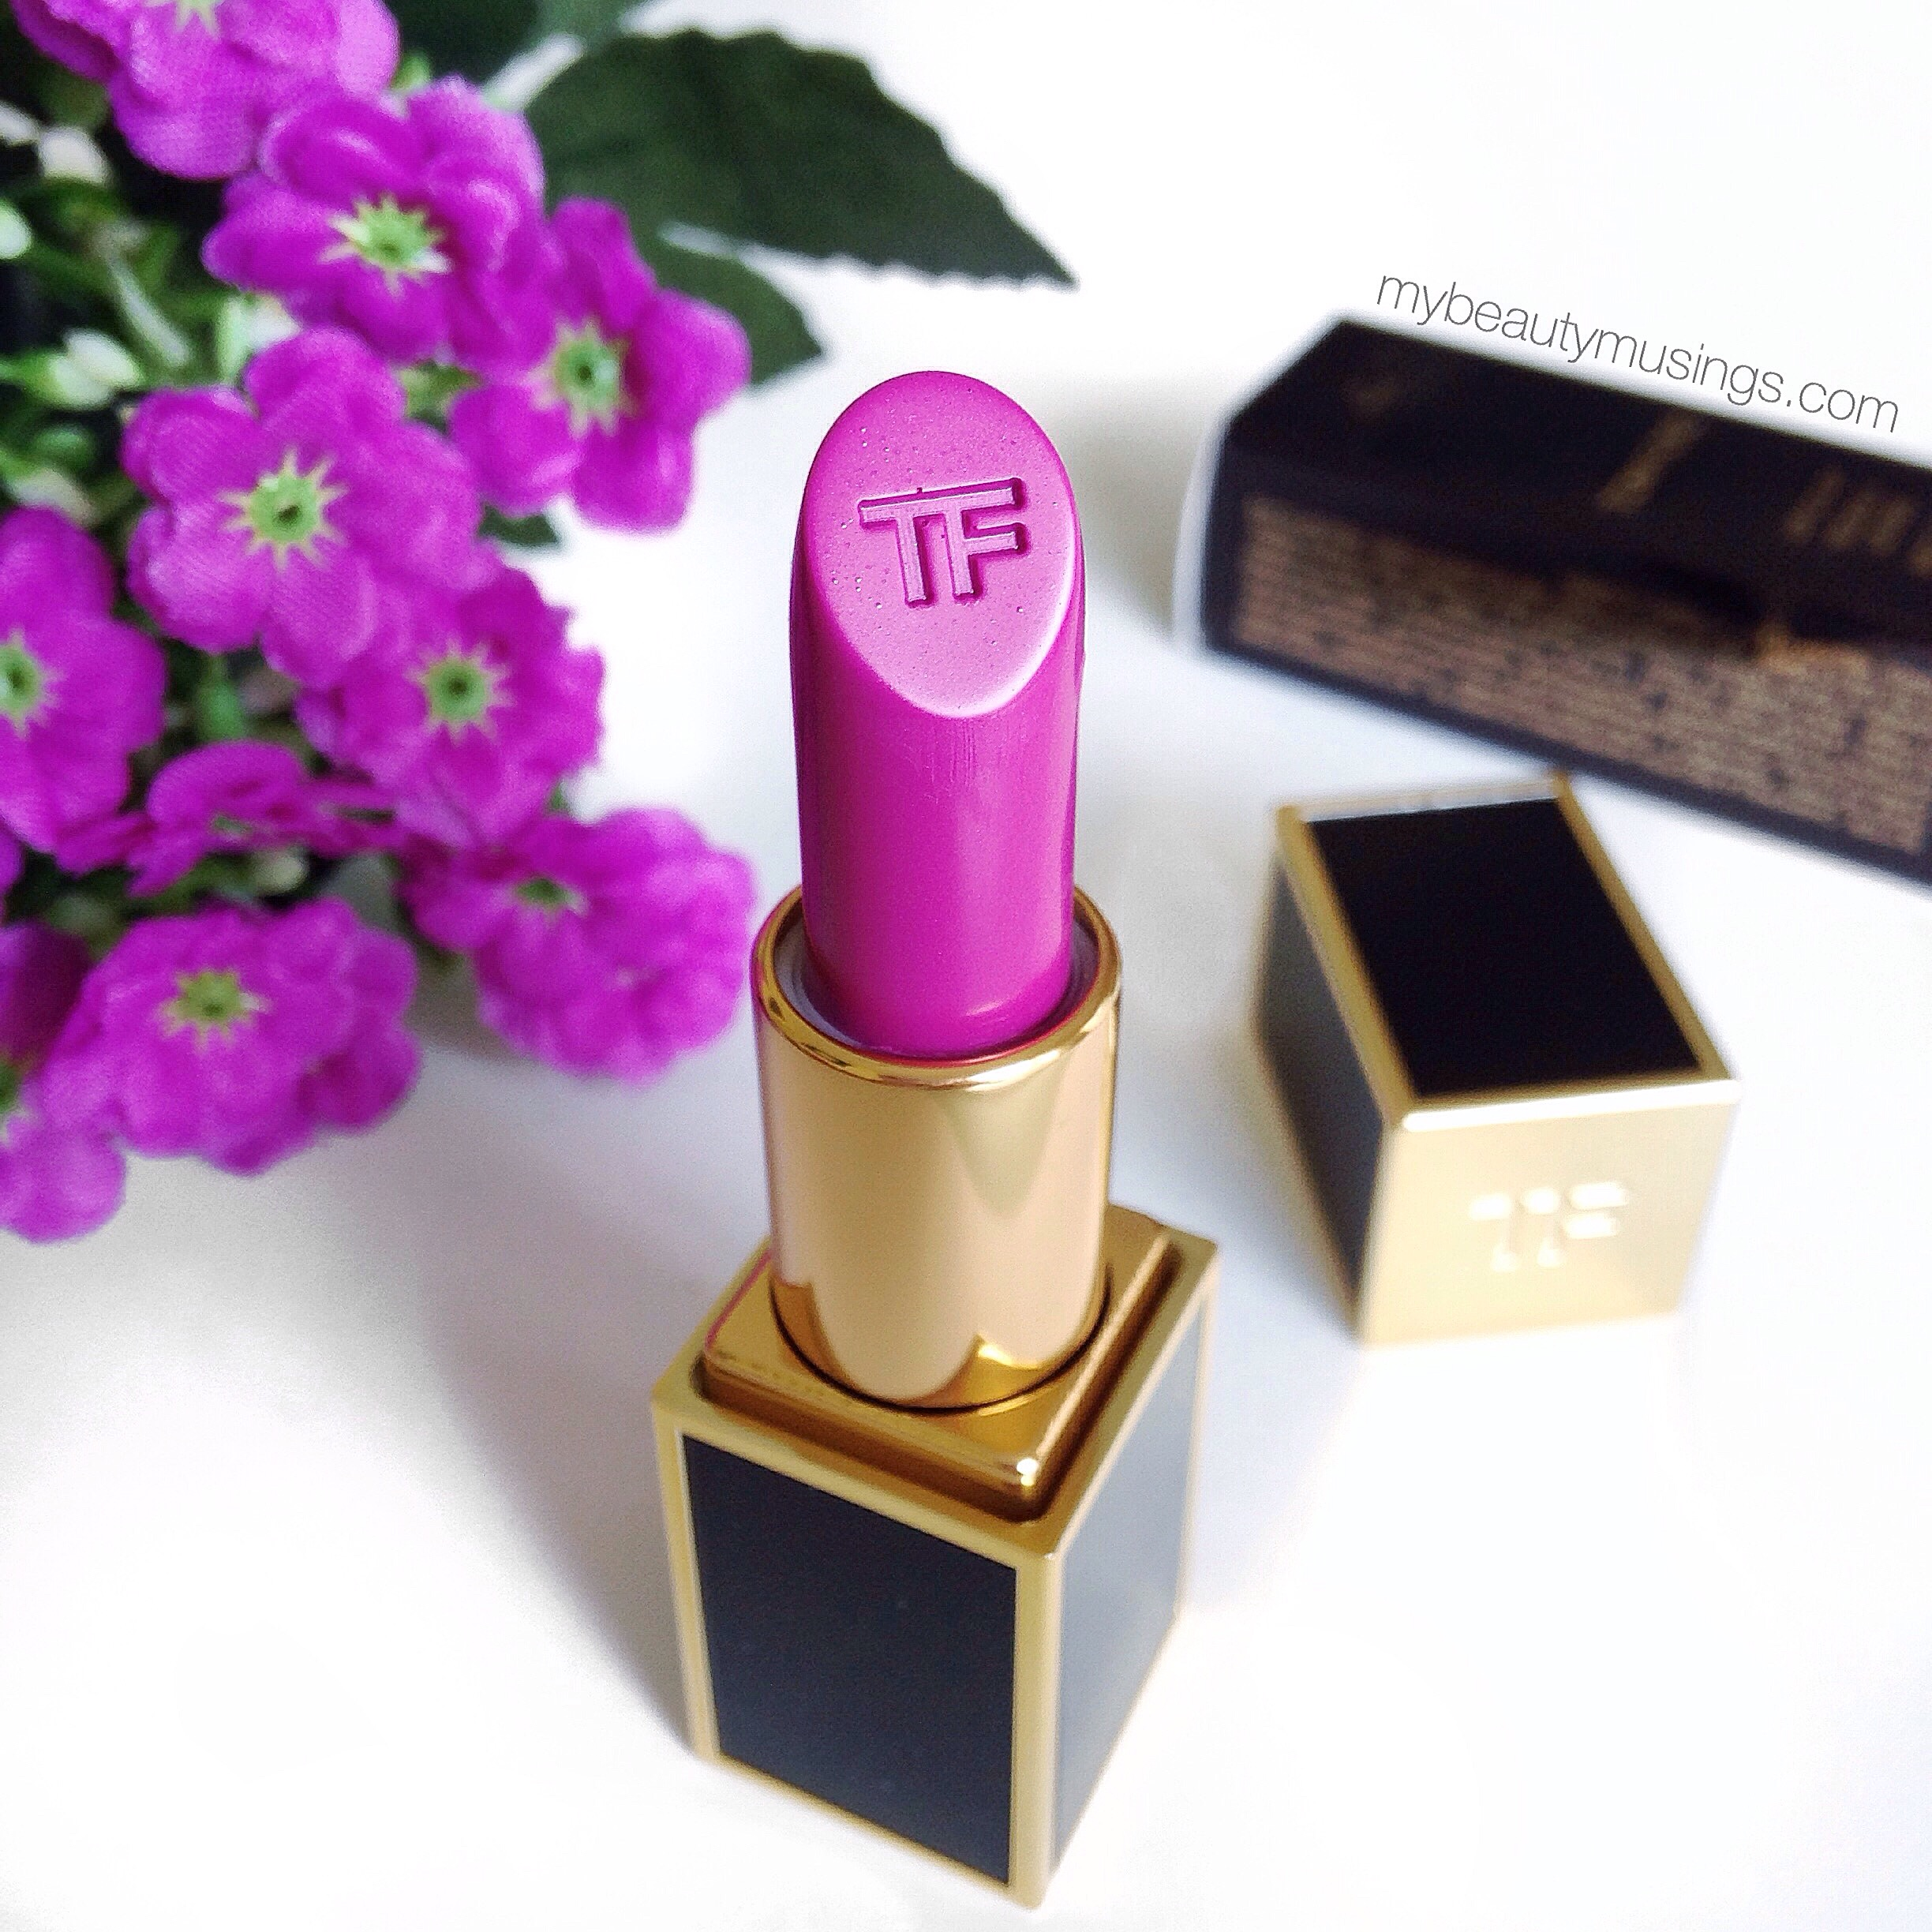 Tom Ford Pablo lipstick review and swatches